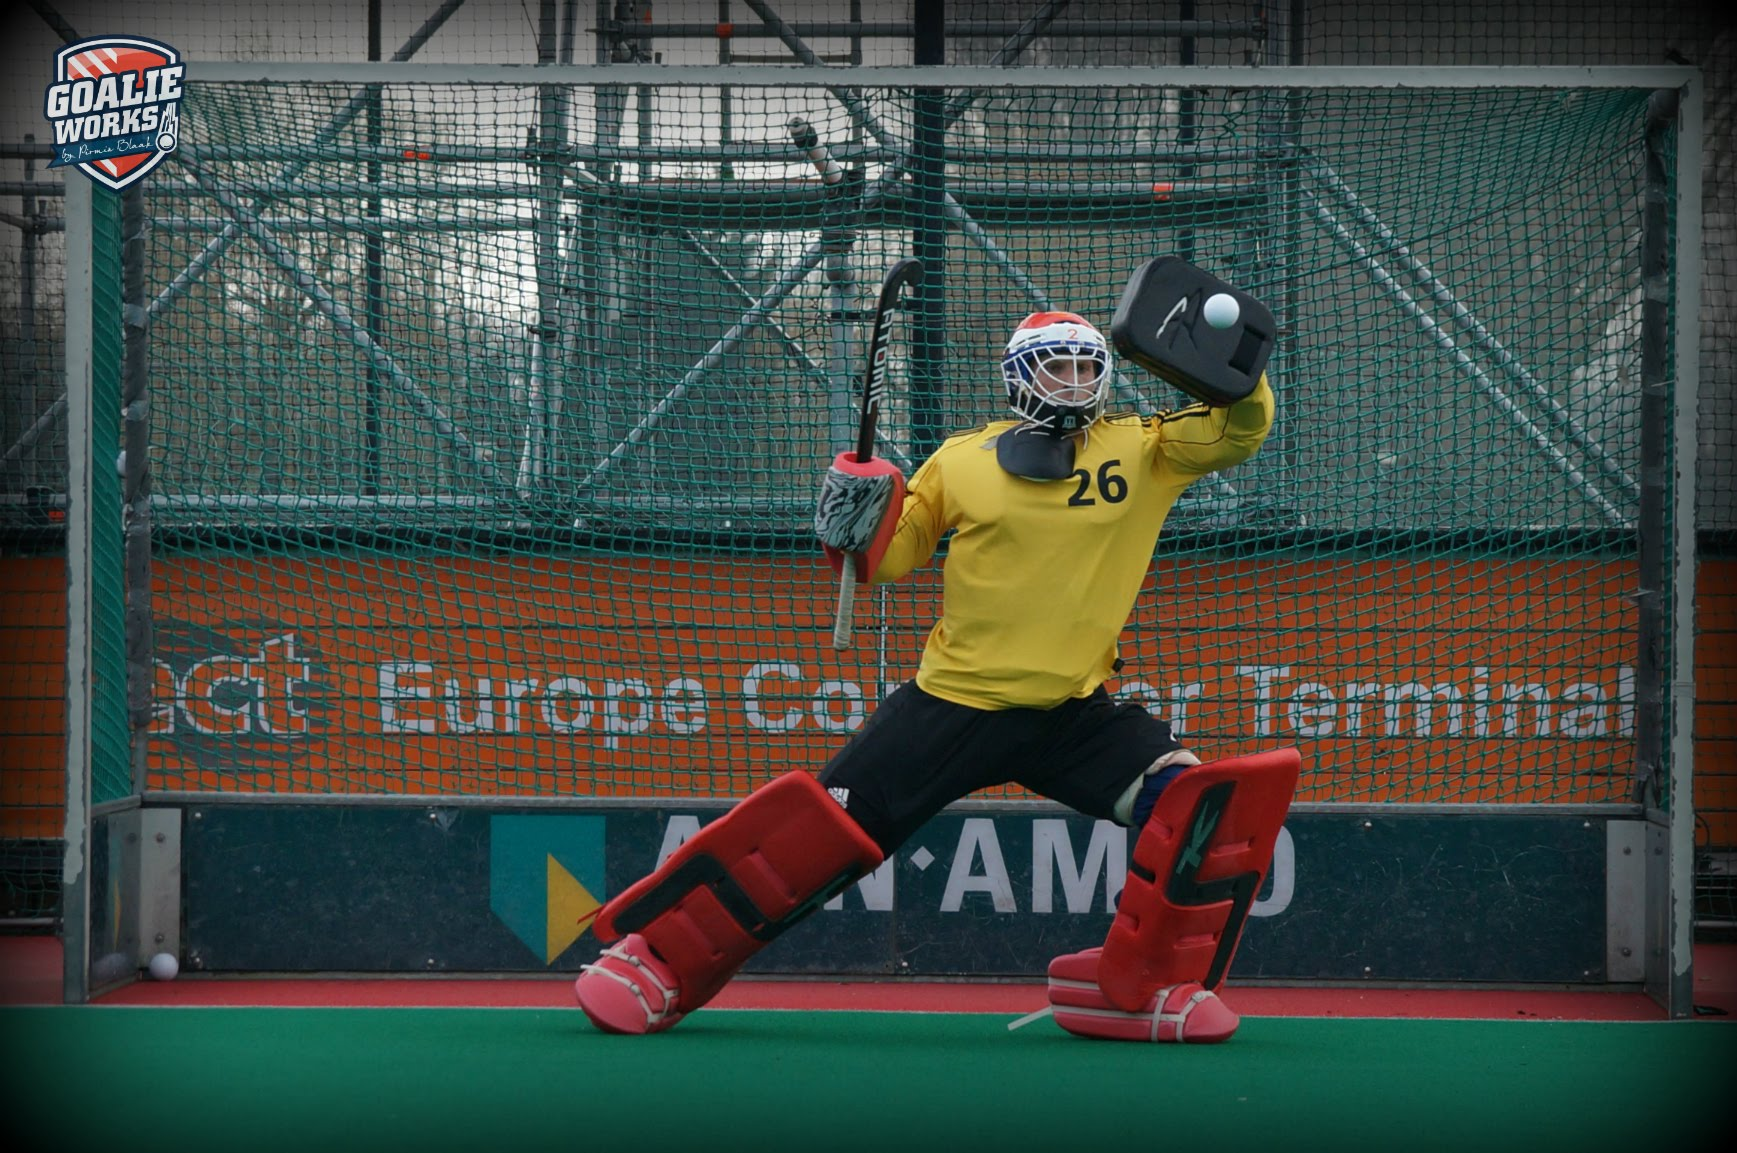 goalie weerstandfonds